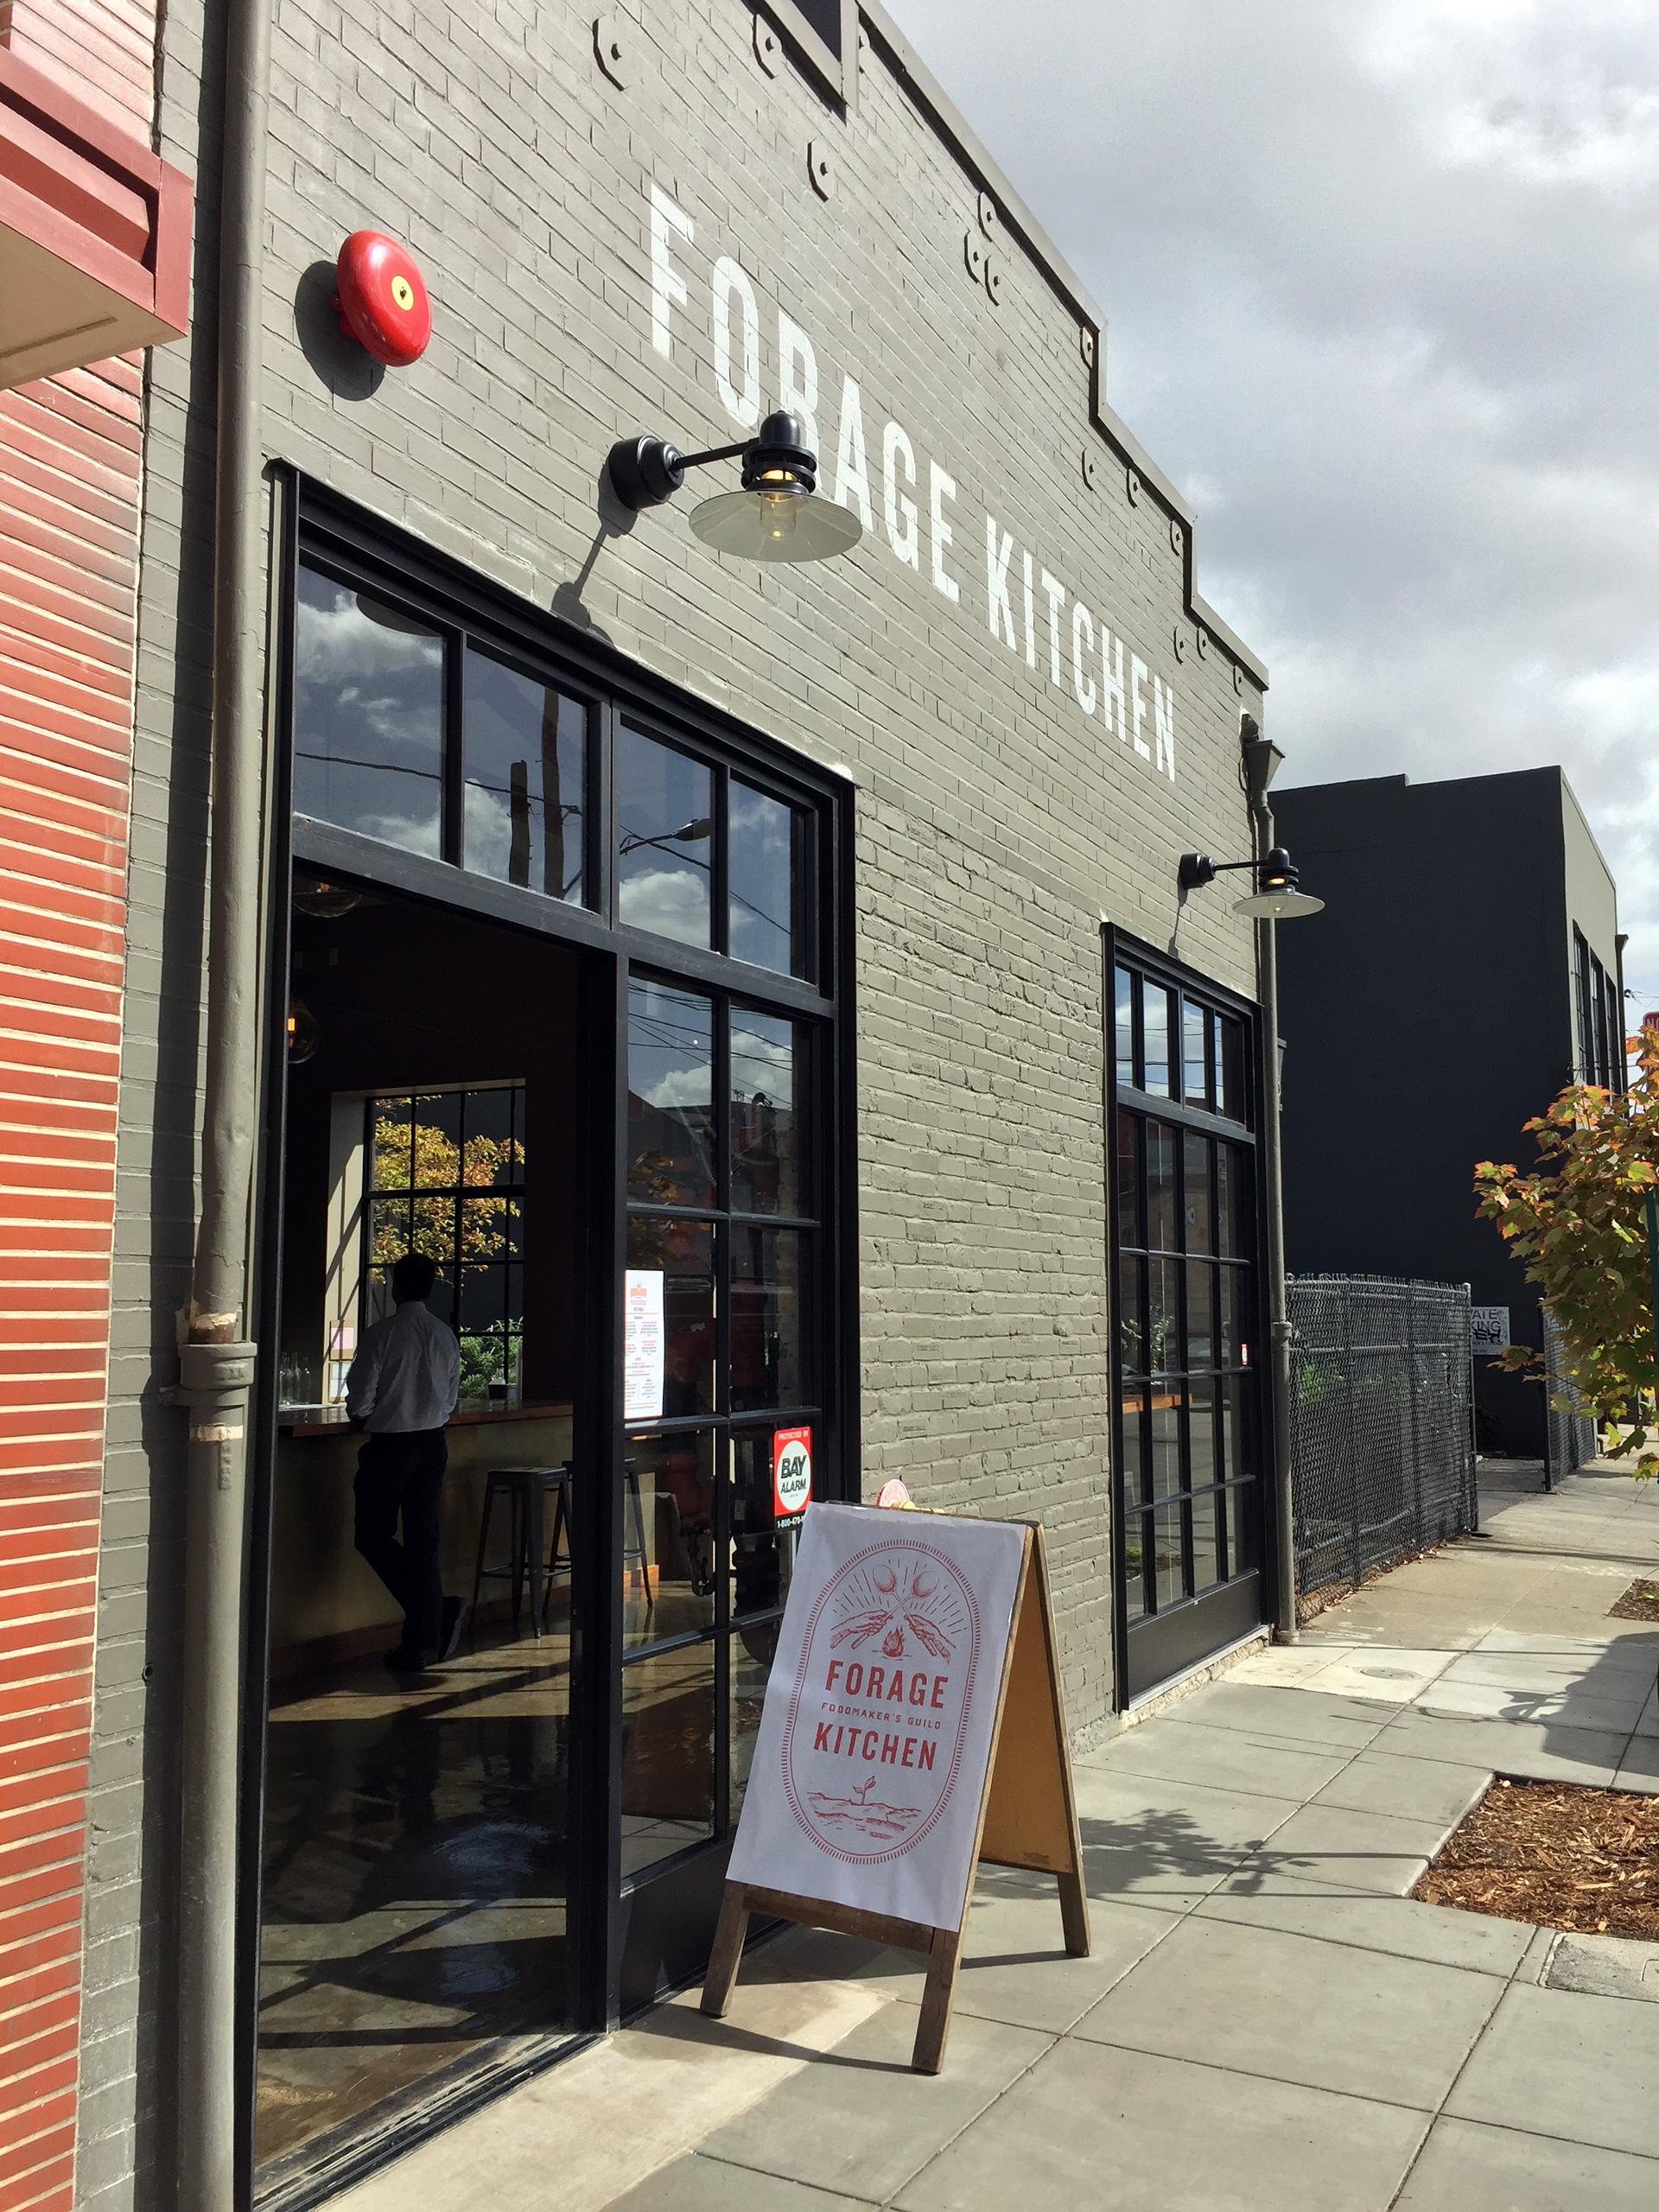 Forage Kitchen, a shared commercial kitchen space on 25th St. in Oakland